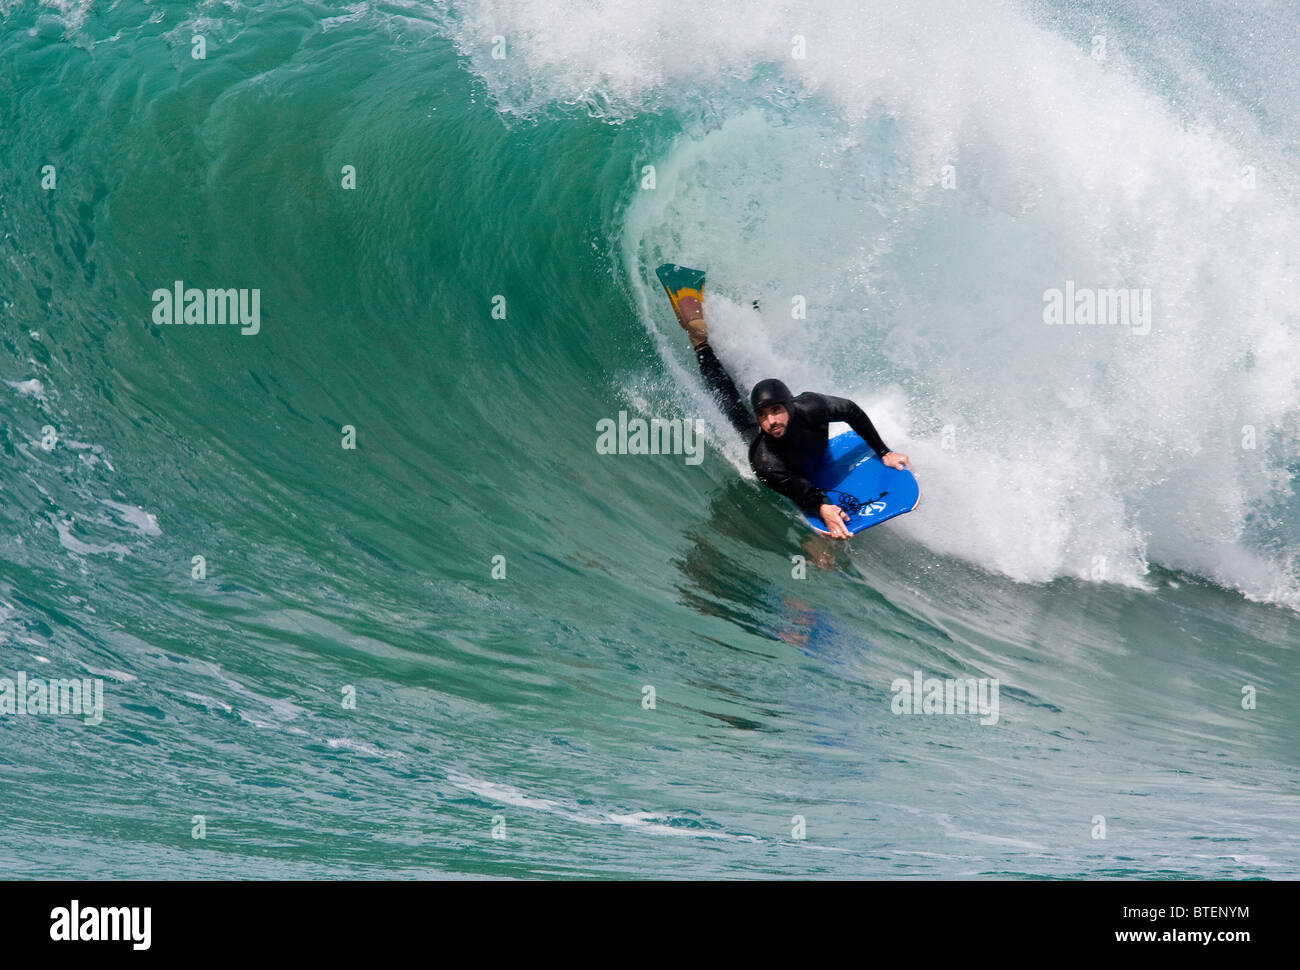 Body Boarding at St Agnes, Cornwall, UK - Stock Image